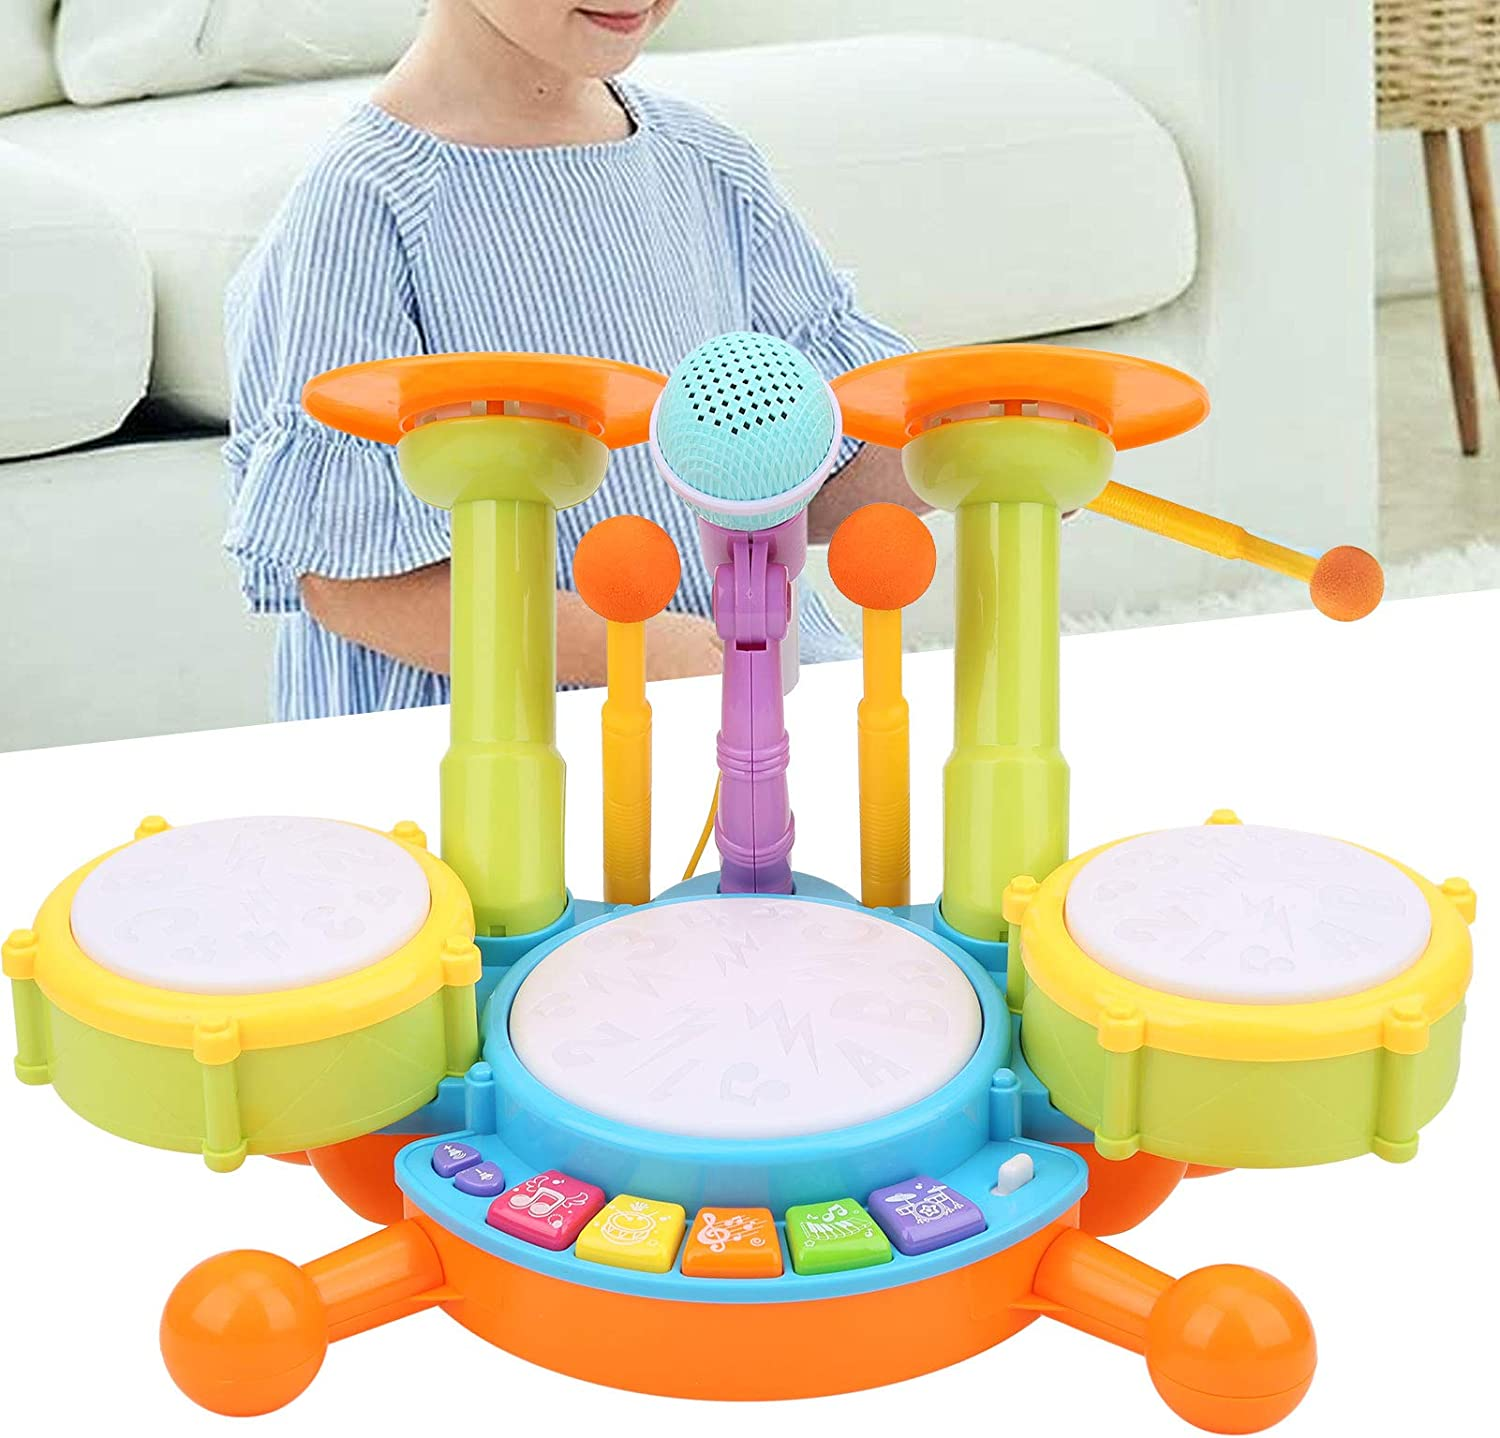 High material JINYI Children Drum Toy Musical Instruments Functi Diverse Max 70% OFF